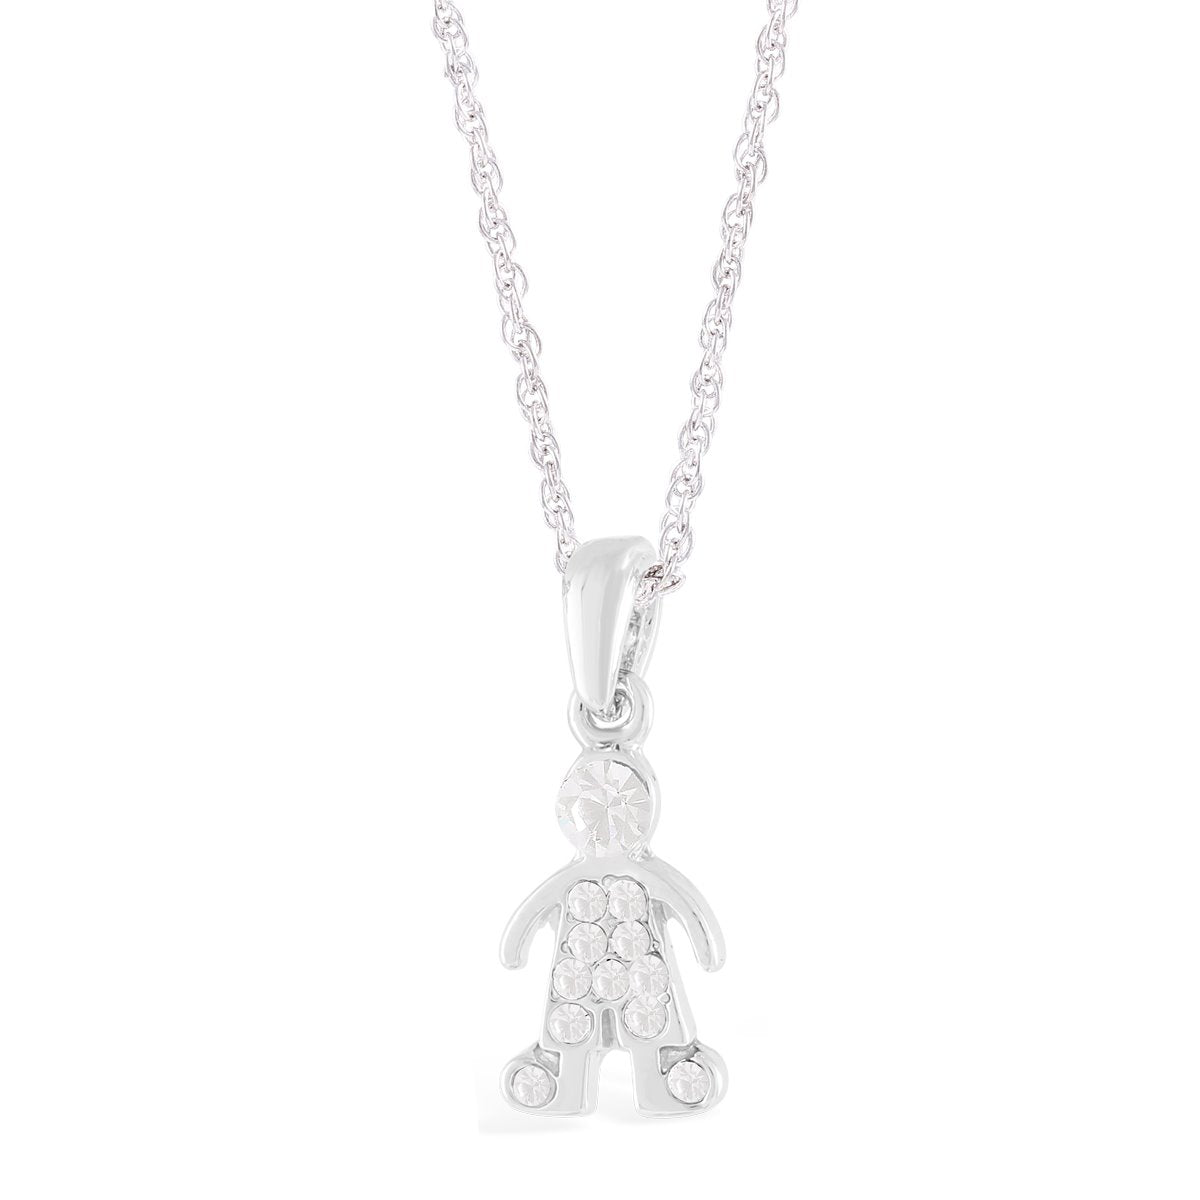 BOY IN CRYSTALS PENDANT CRYSTAL